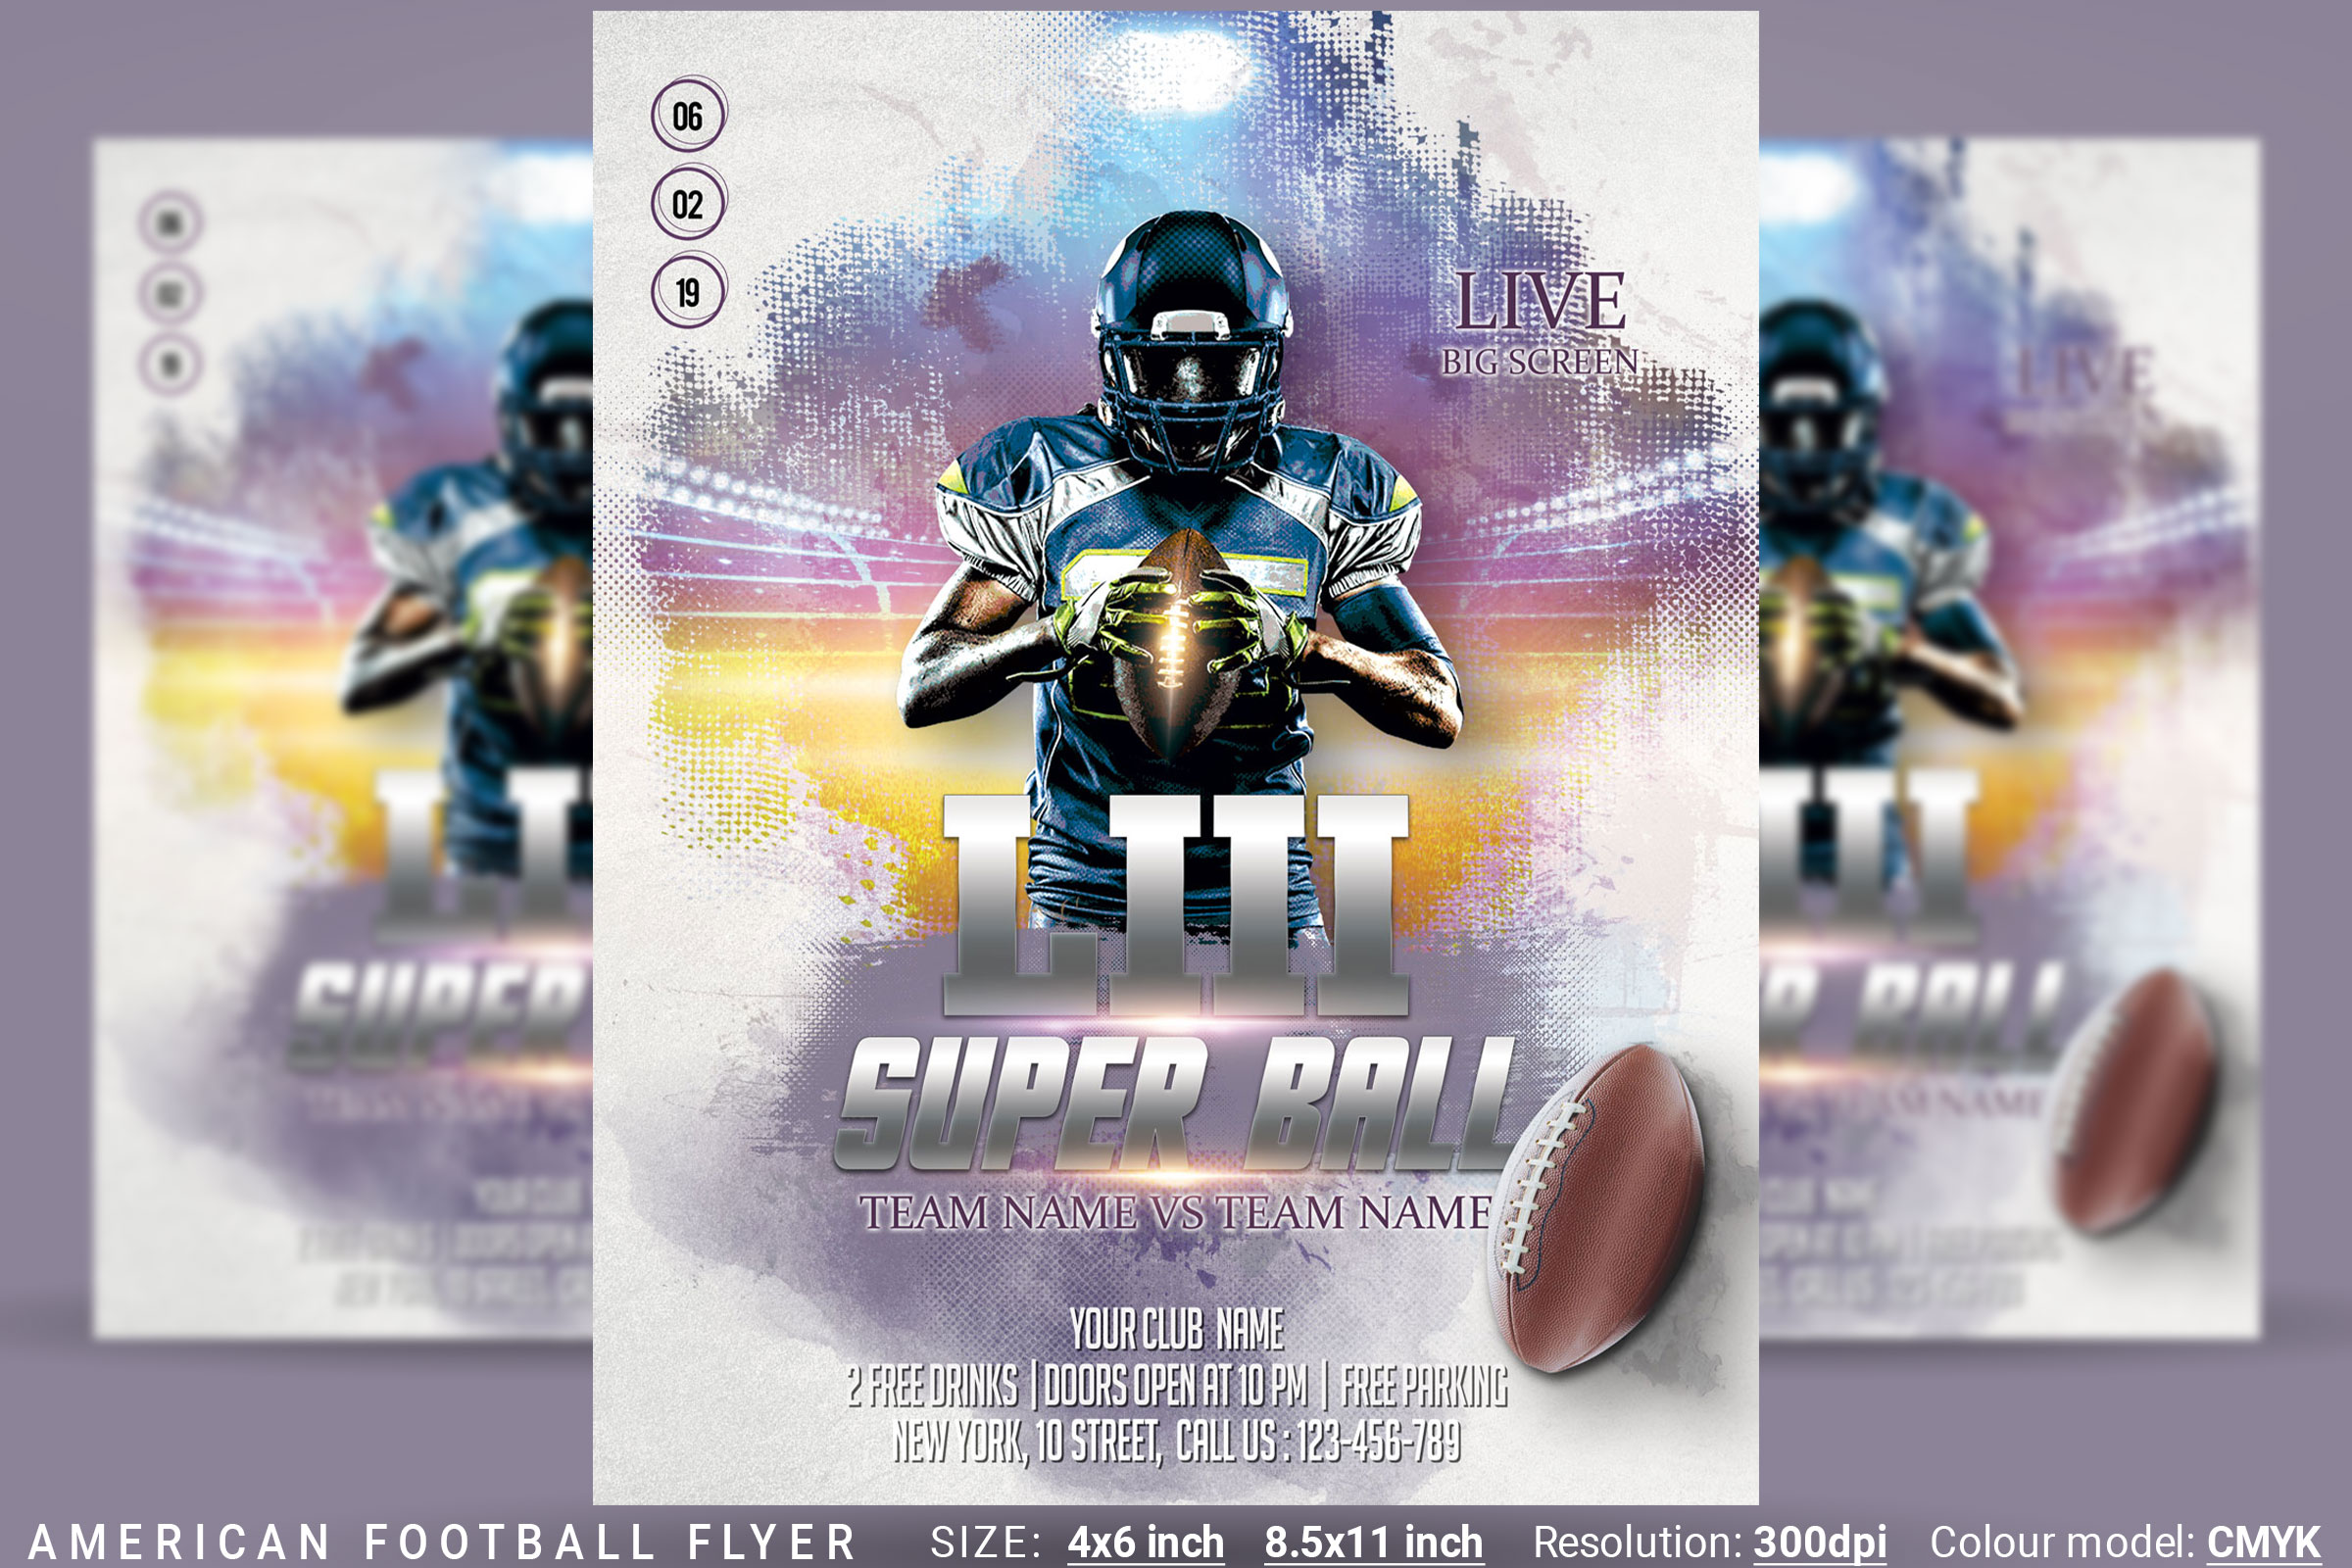 American Football Flyer And Poster example image 1